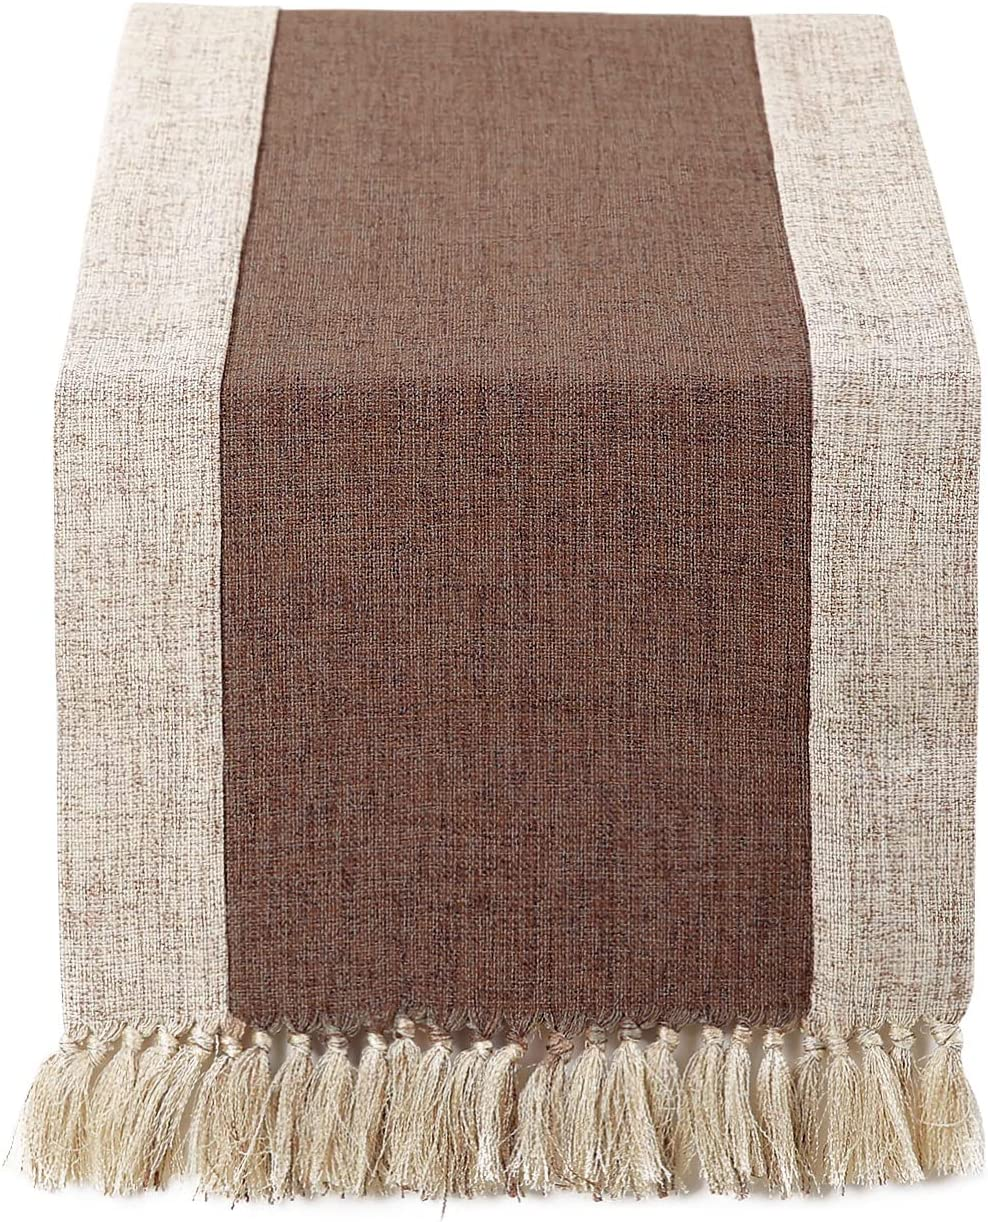 Chassic 15 x 72 inch Rustic Burlap Woven Boho Table Runners Linen with Handmade Fringe, Village Farmhouse Dining Room Dresser Decor - Brown